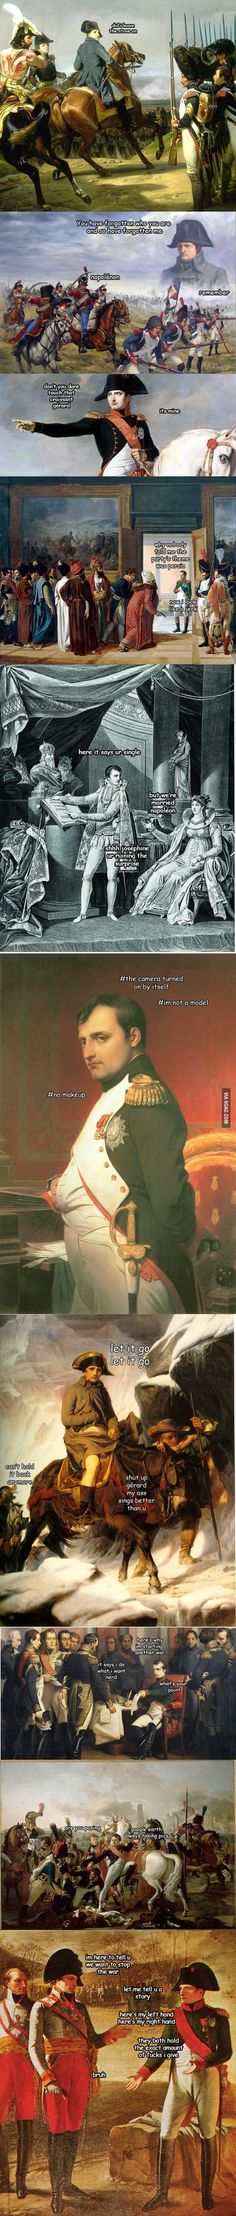 The Adventures of Napoléon Bonaparte Omygosh save me, just as good as the Washington ones